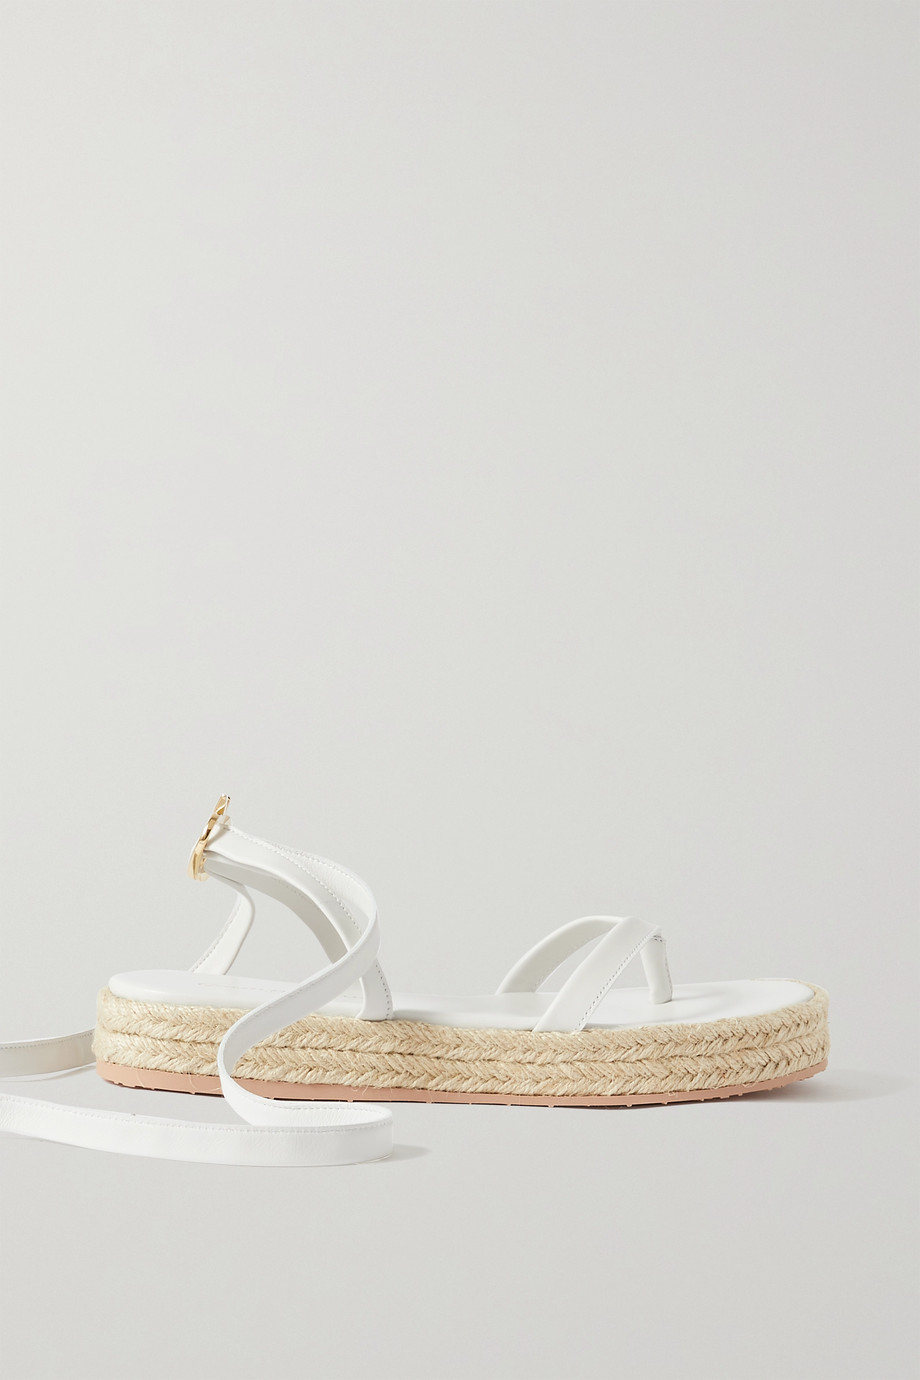 Gianvito Rossi Ribbon Beachclub leather espadrille sandals